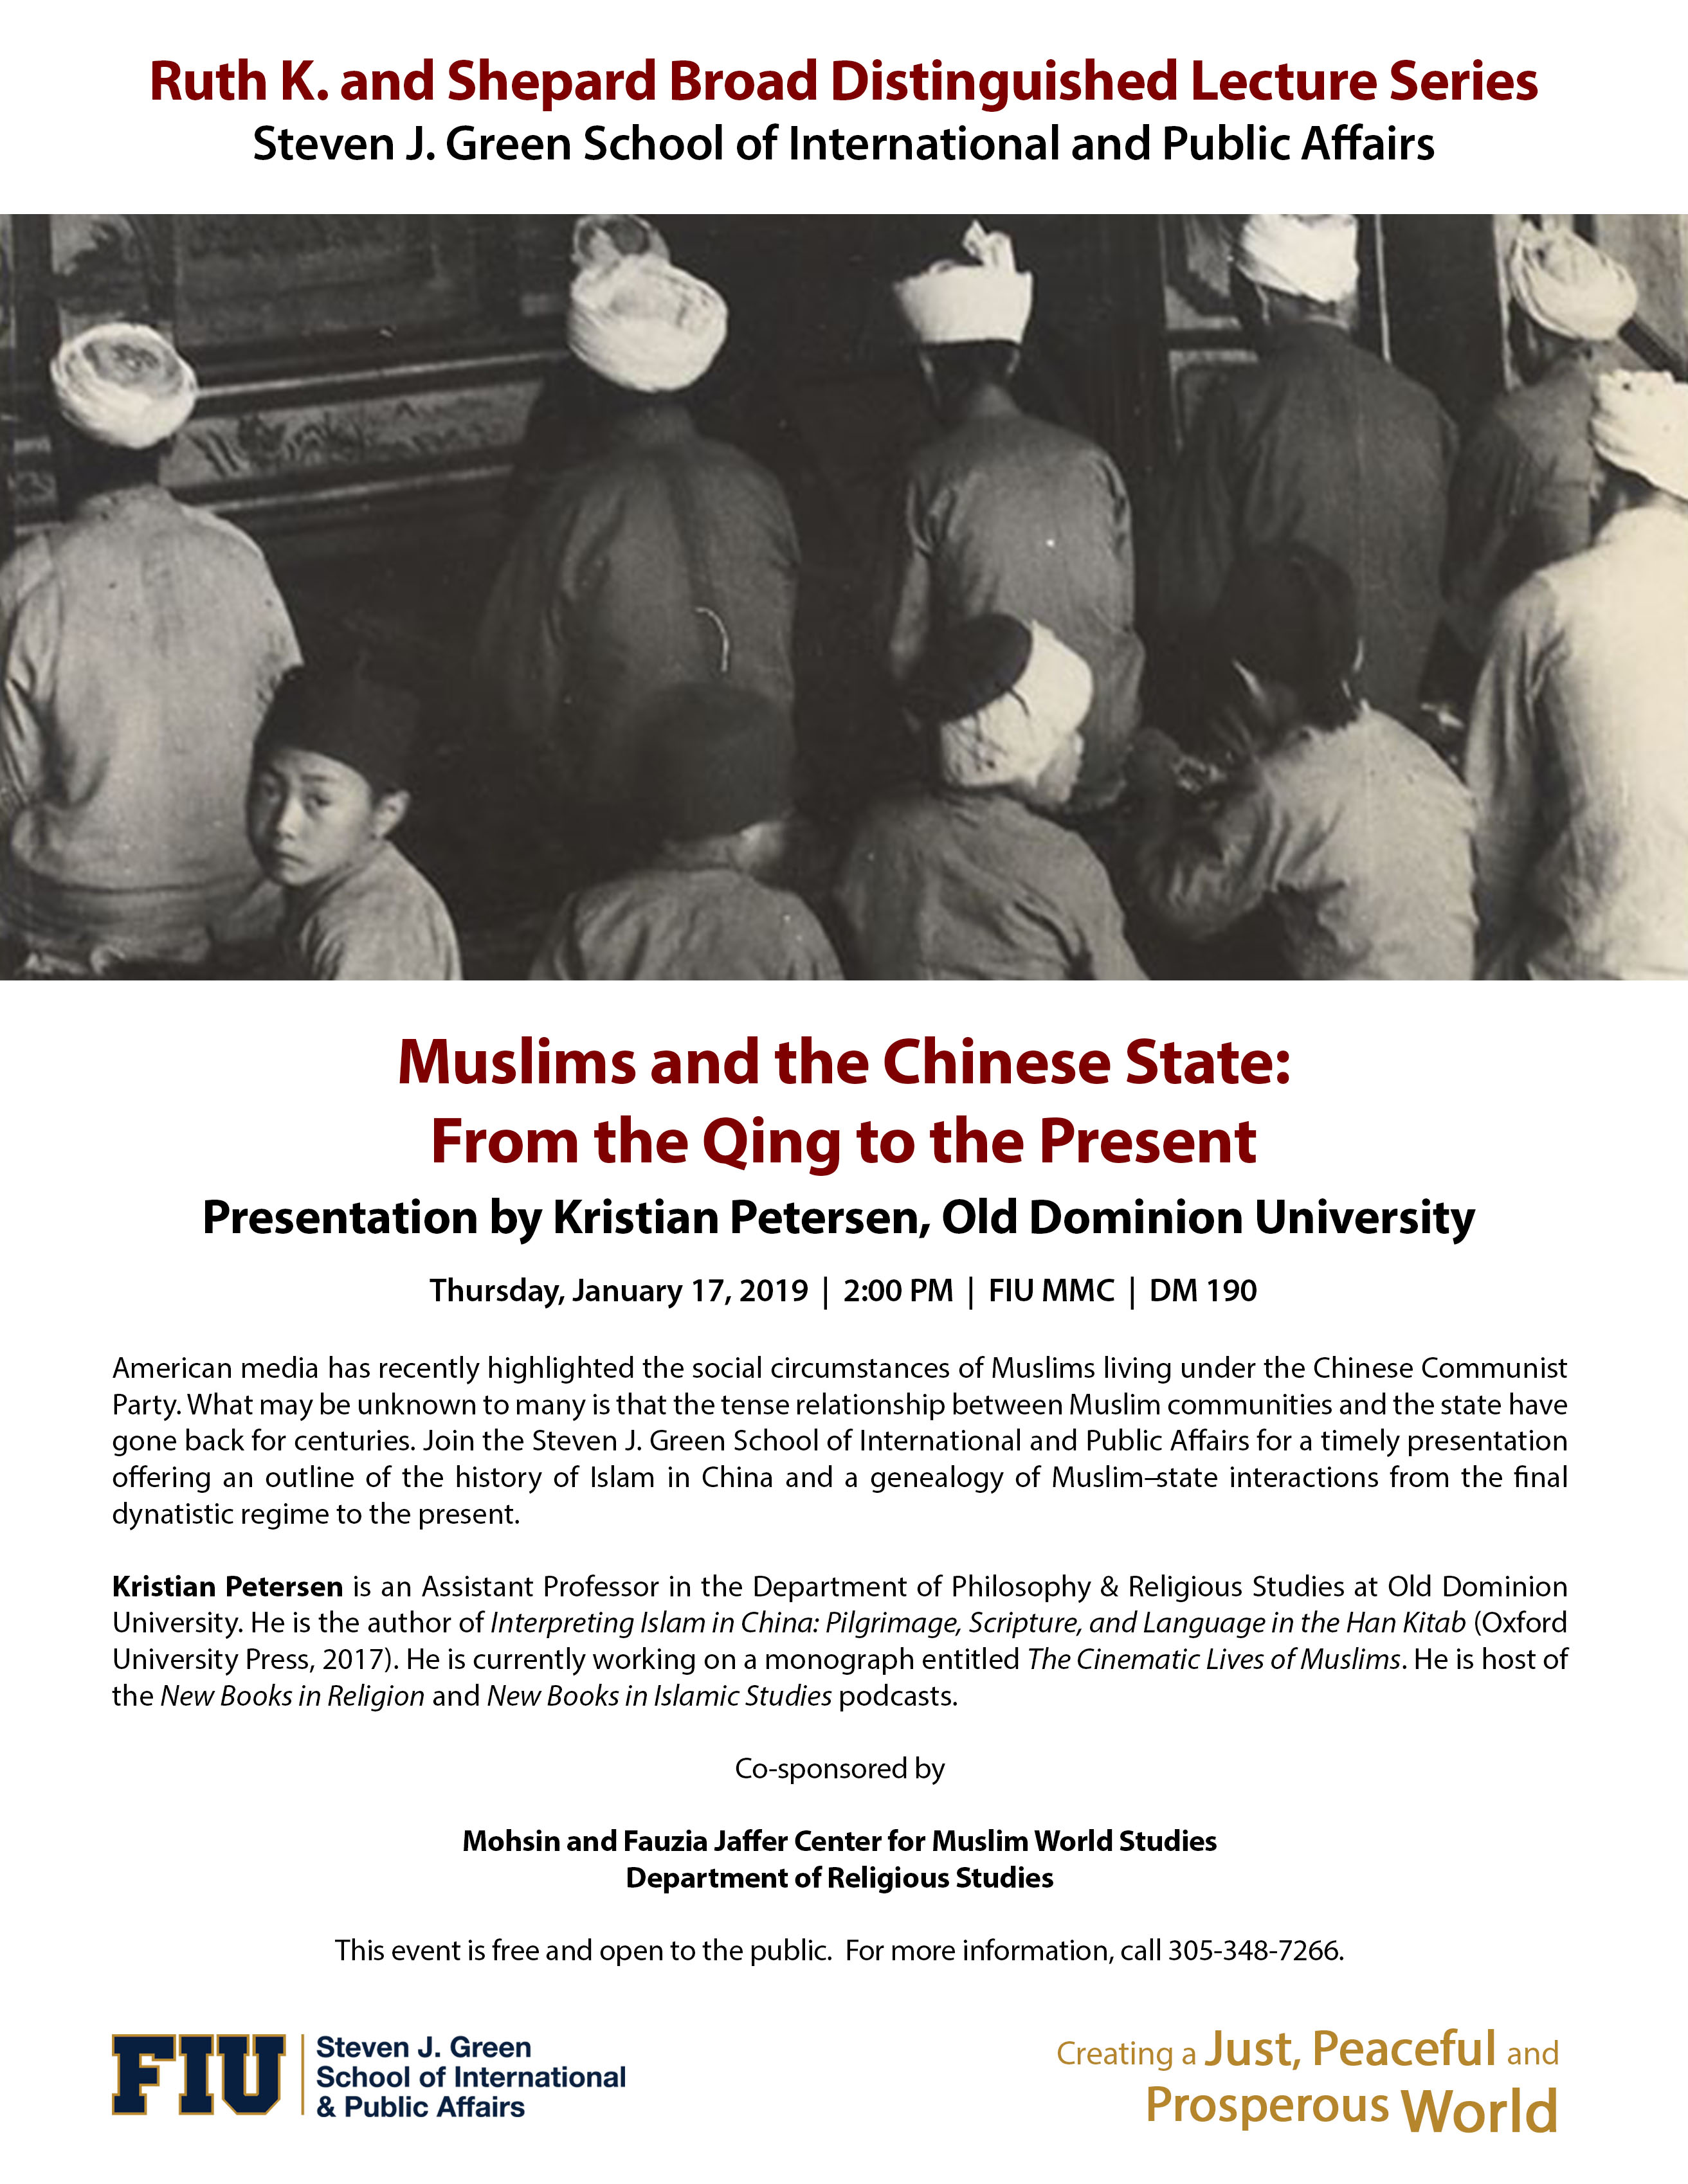 Muslims and the Chinese State: From the Qing to the Present